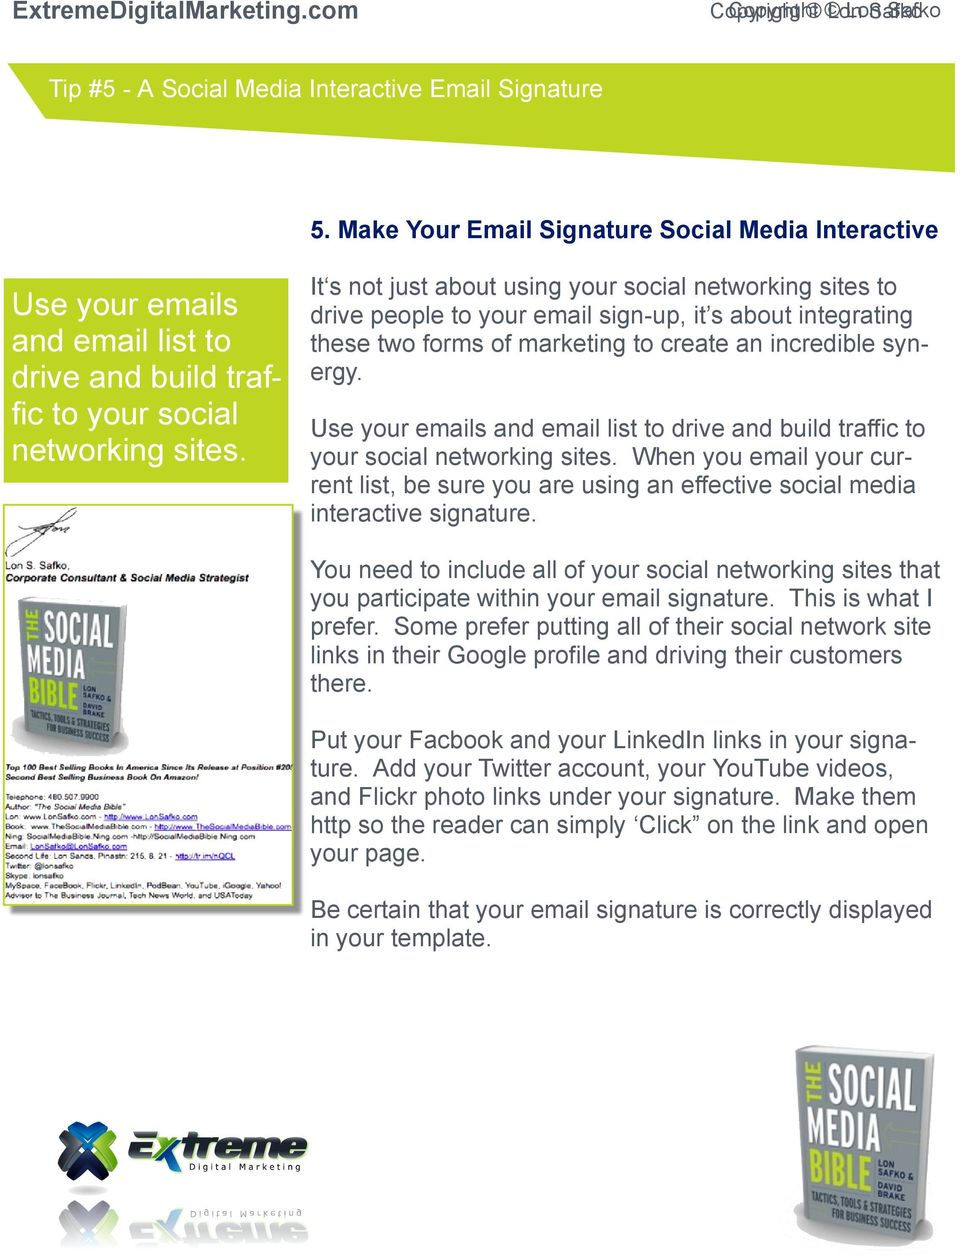 It s not just about using your social networking sites to drive people to your email sign-up, it s about integrating these two forms of marketing to create an incredible synergy.